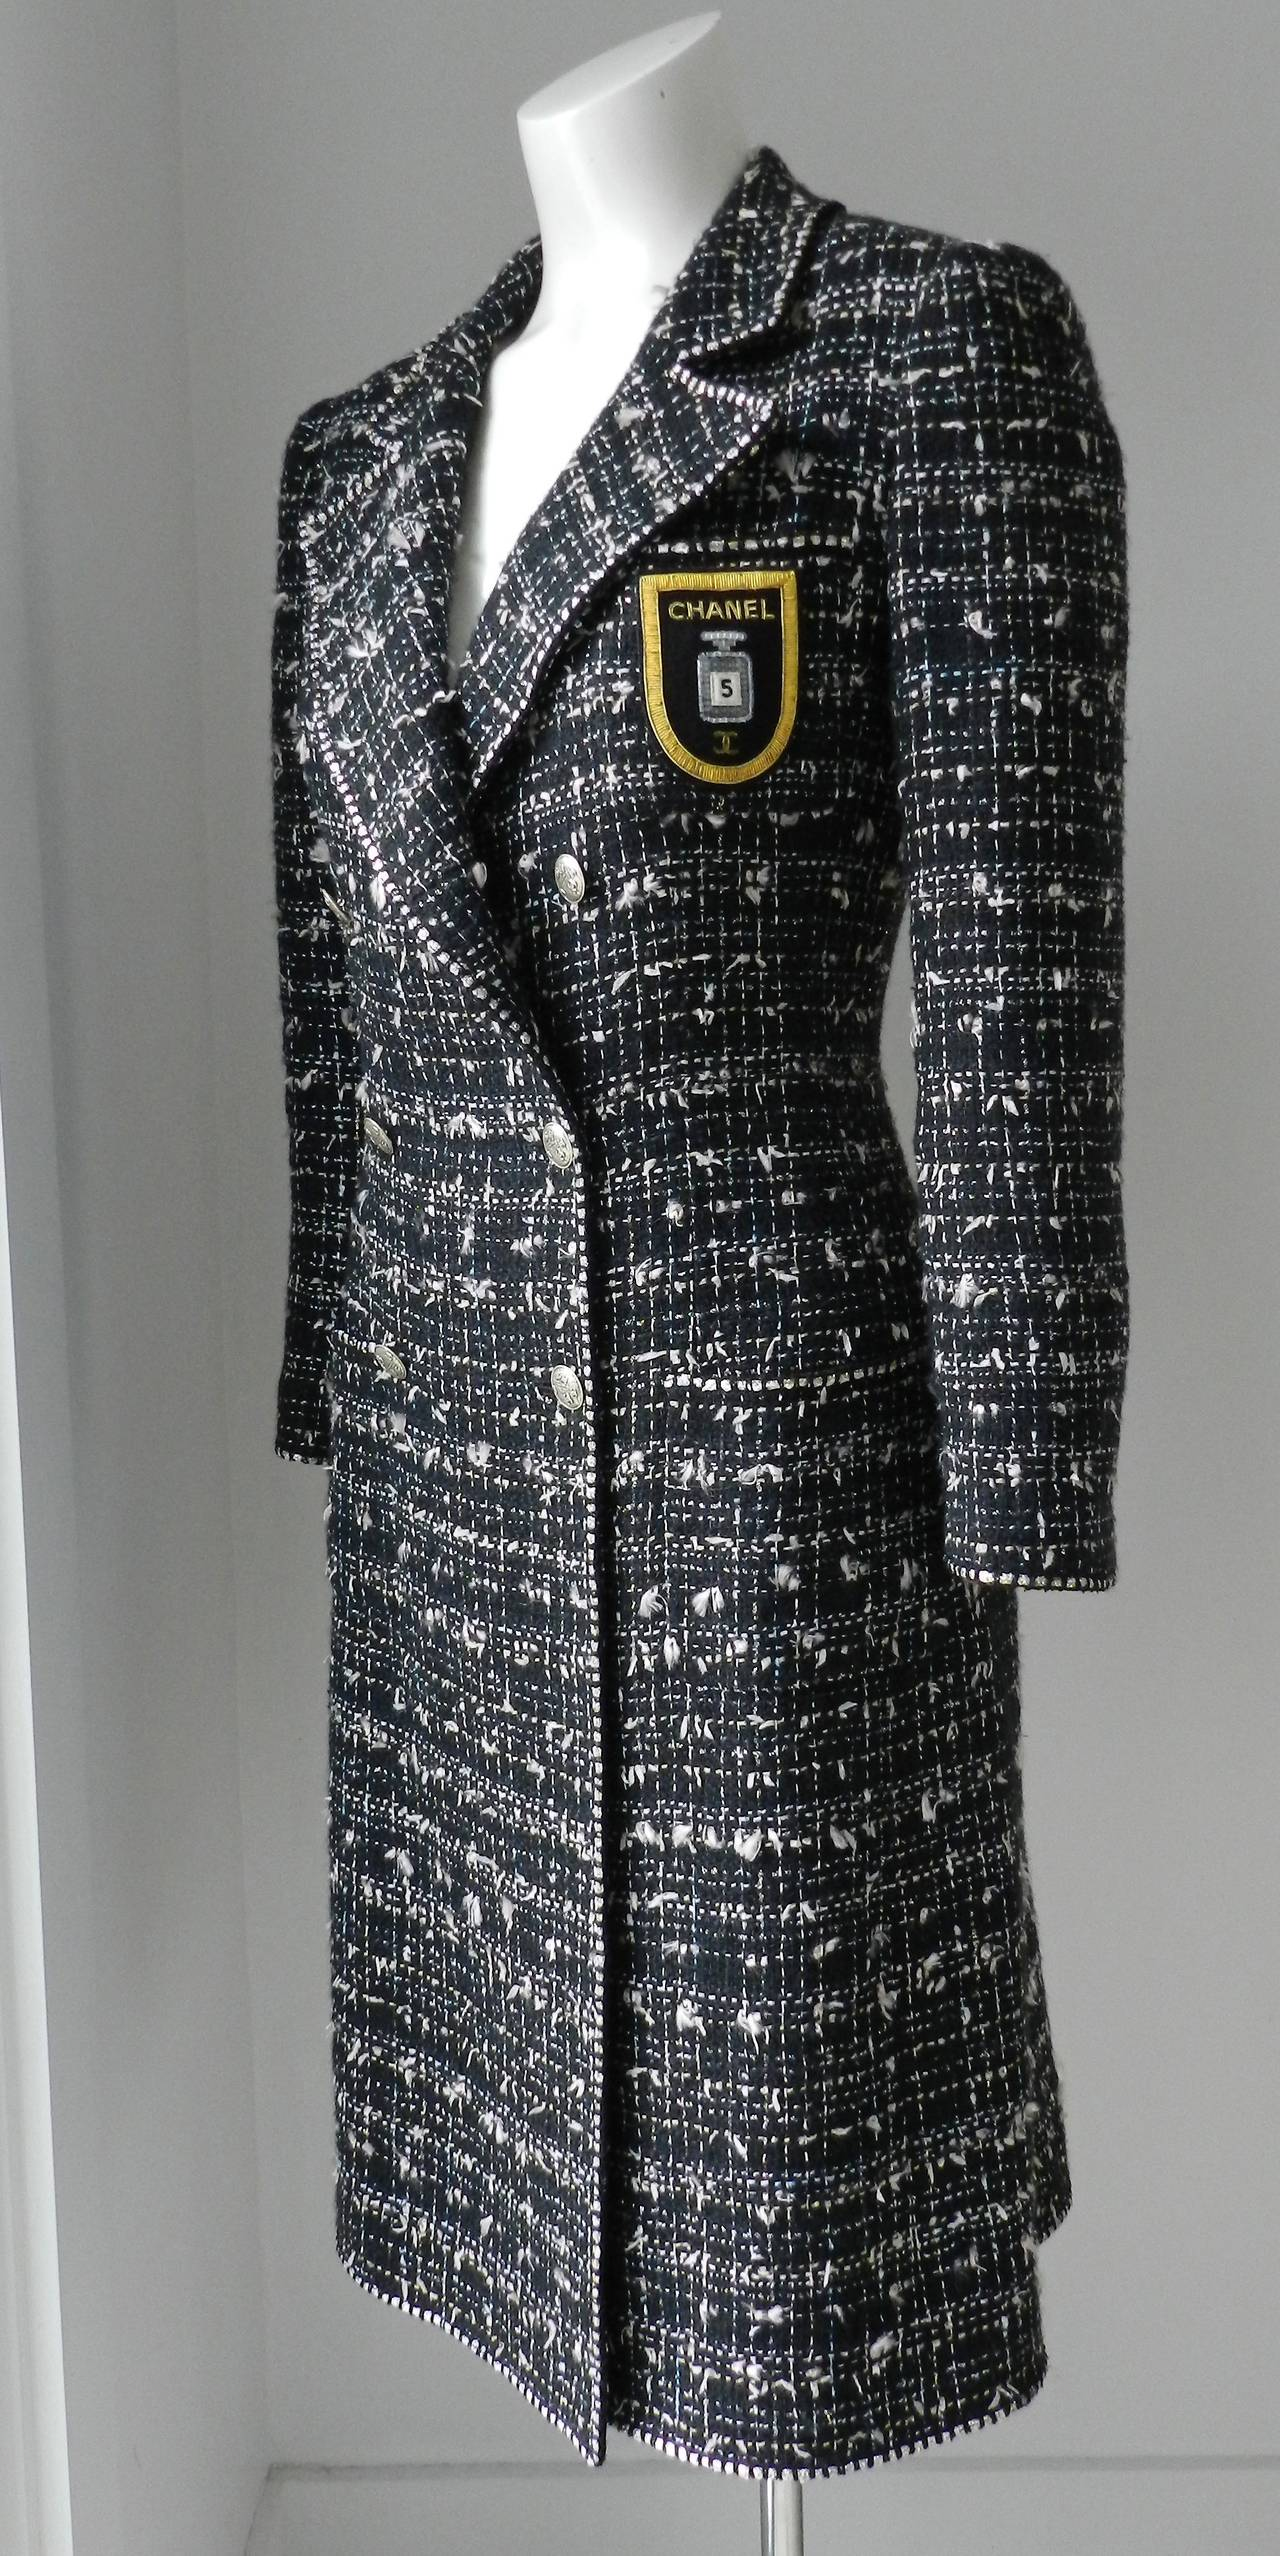 3b89f6a161b Chanel 2005 resort collection long tweed jacket. Body is black with light  pink